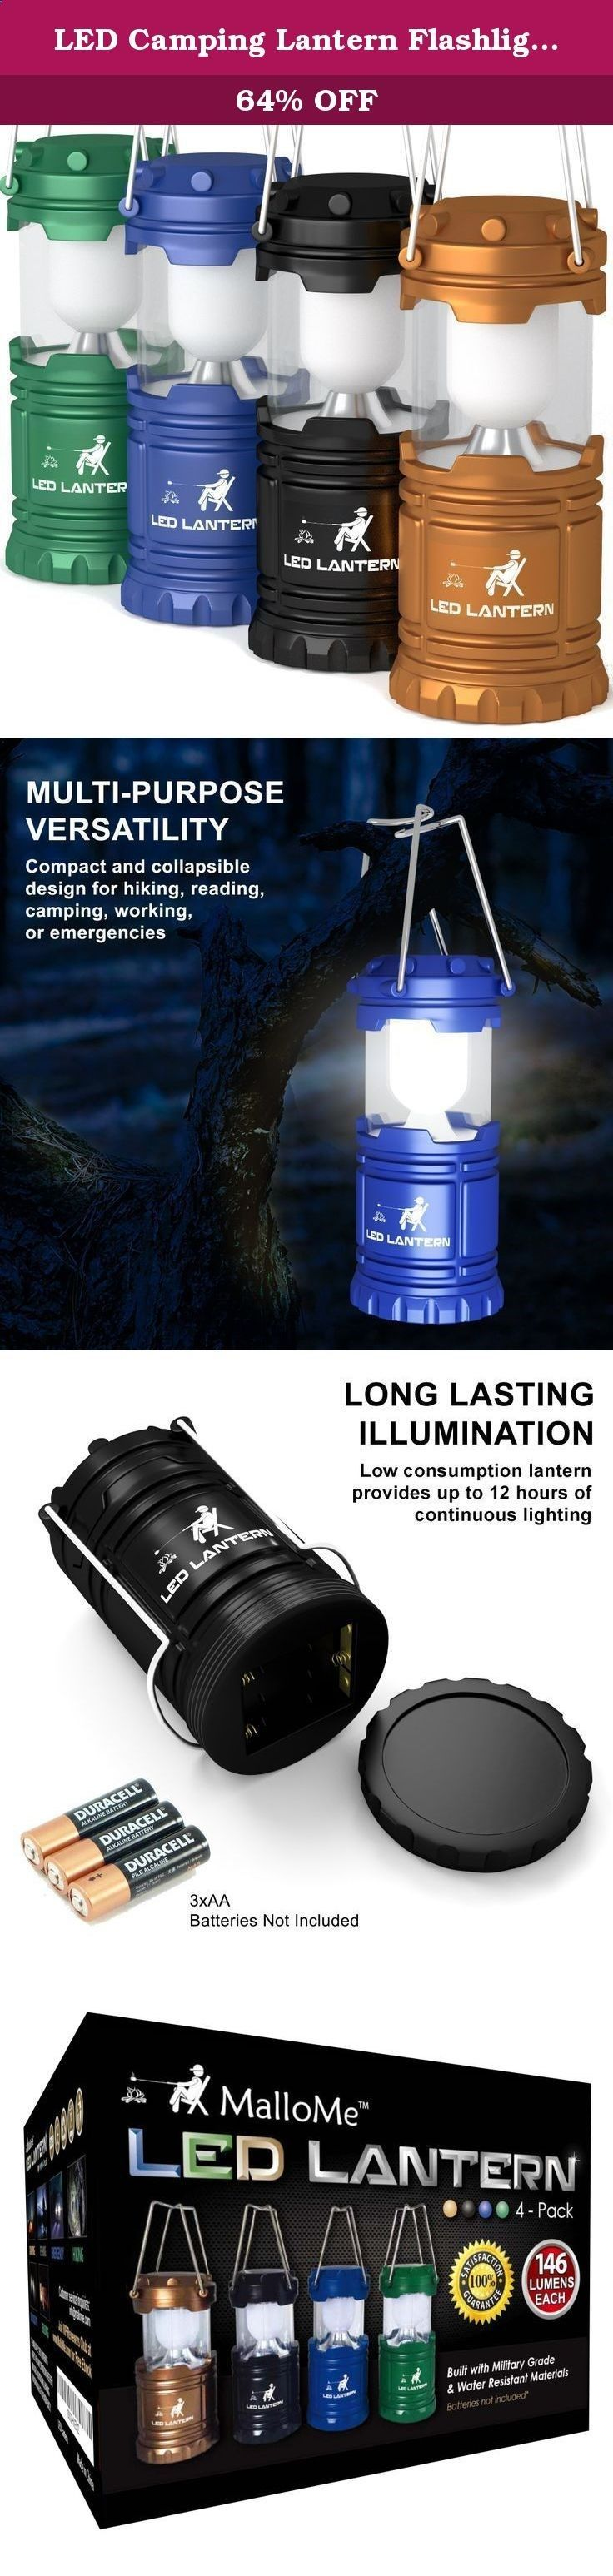 LED Camping Lantern Flashlights Camping Equipment - Great for Emergency, Tent Light, Backpacking, 4 Pack Gift Set. GONE ARE THE DAYS OF DULL, HEAVY, & CHEAP CAMPING LED LANTERNS & FLASHLIGHTS! GET YOUR CAMPING BACKPACK READY! THE BEST OUTDOOR BACKPACKING GEAR & CAMPING GEAR IS FINALLY HERE! MalloMe Camping Lantern Emergency Light Survival Gear | Collapsing 2 Pack Set Enjoy the Great Outdoors Worry Free Now! THE #1 MOST CONVENIENT BACKPACKING & HIKING LIGHTS SET THAT WILL MAKE YOU THE C...